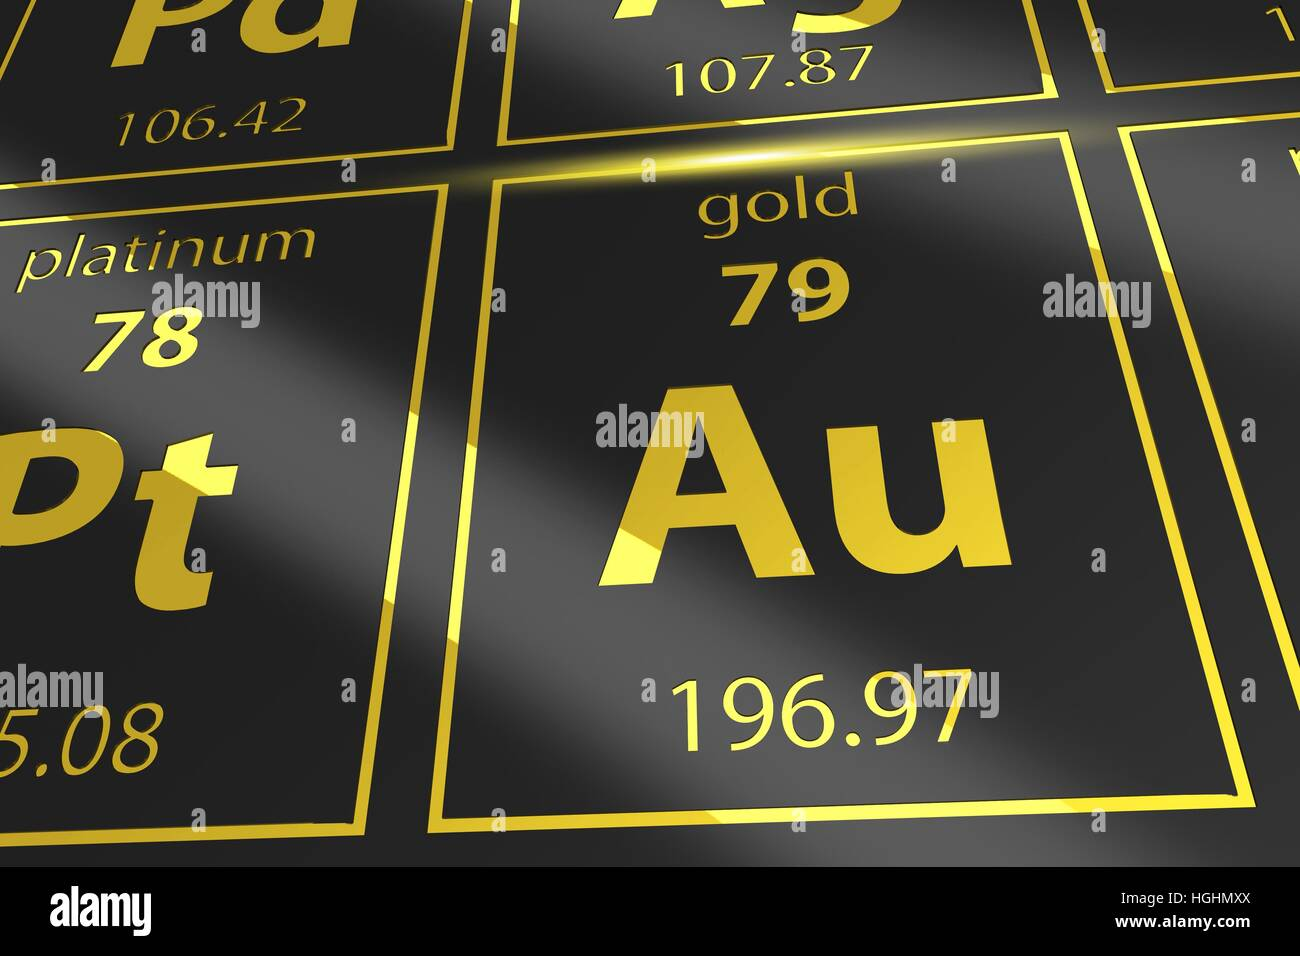 Periodic table golden au mendeleev table closeup on gold stock periodic table golden au mendeleev table closeup on gold urtaz Images